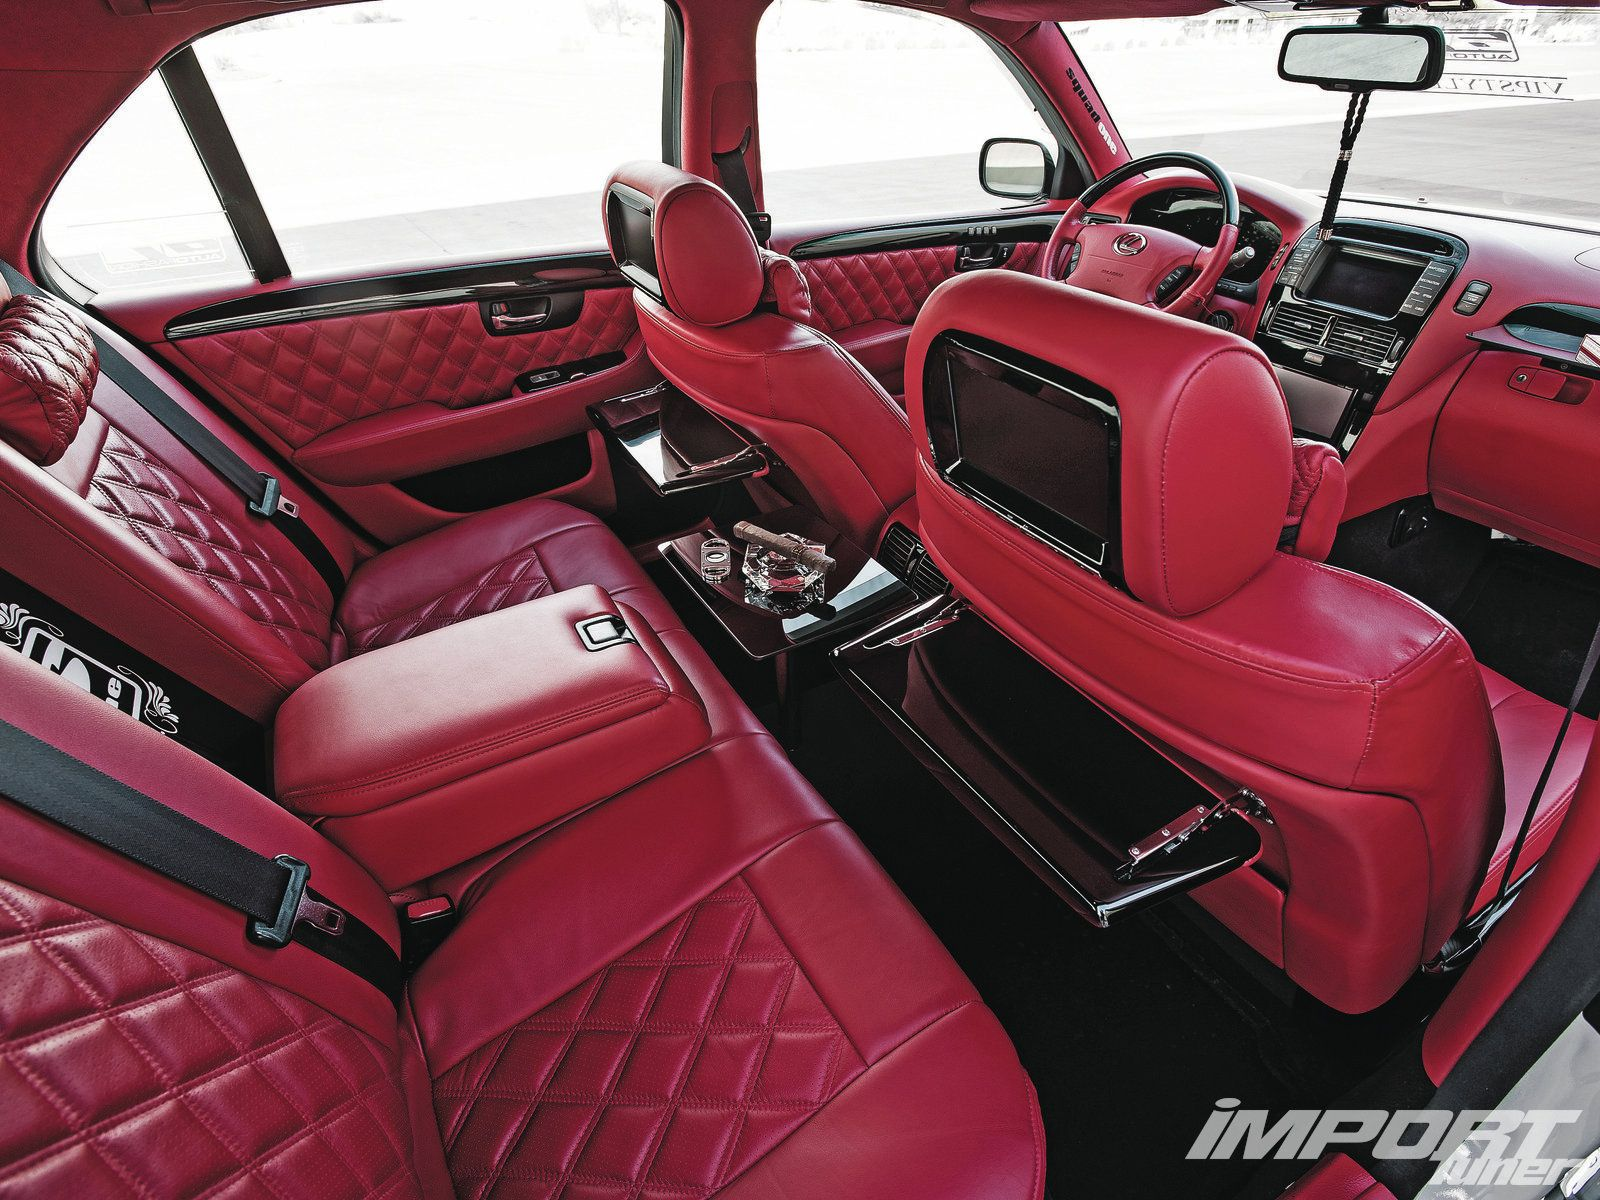 Red Vip Style Car Interior Vip Car Pics And Parts Cars Luxury